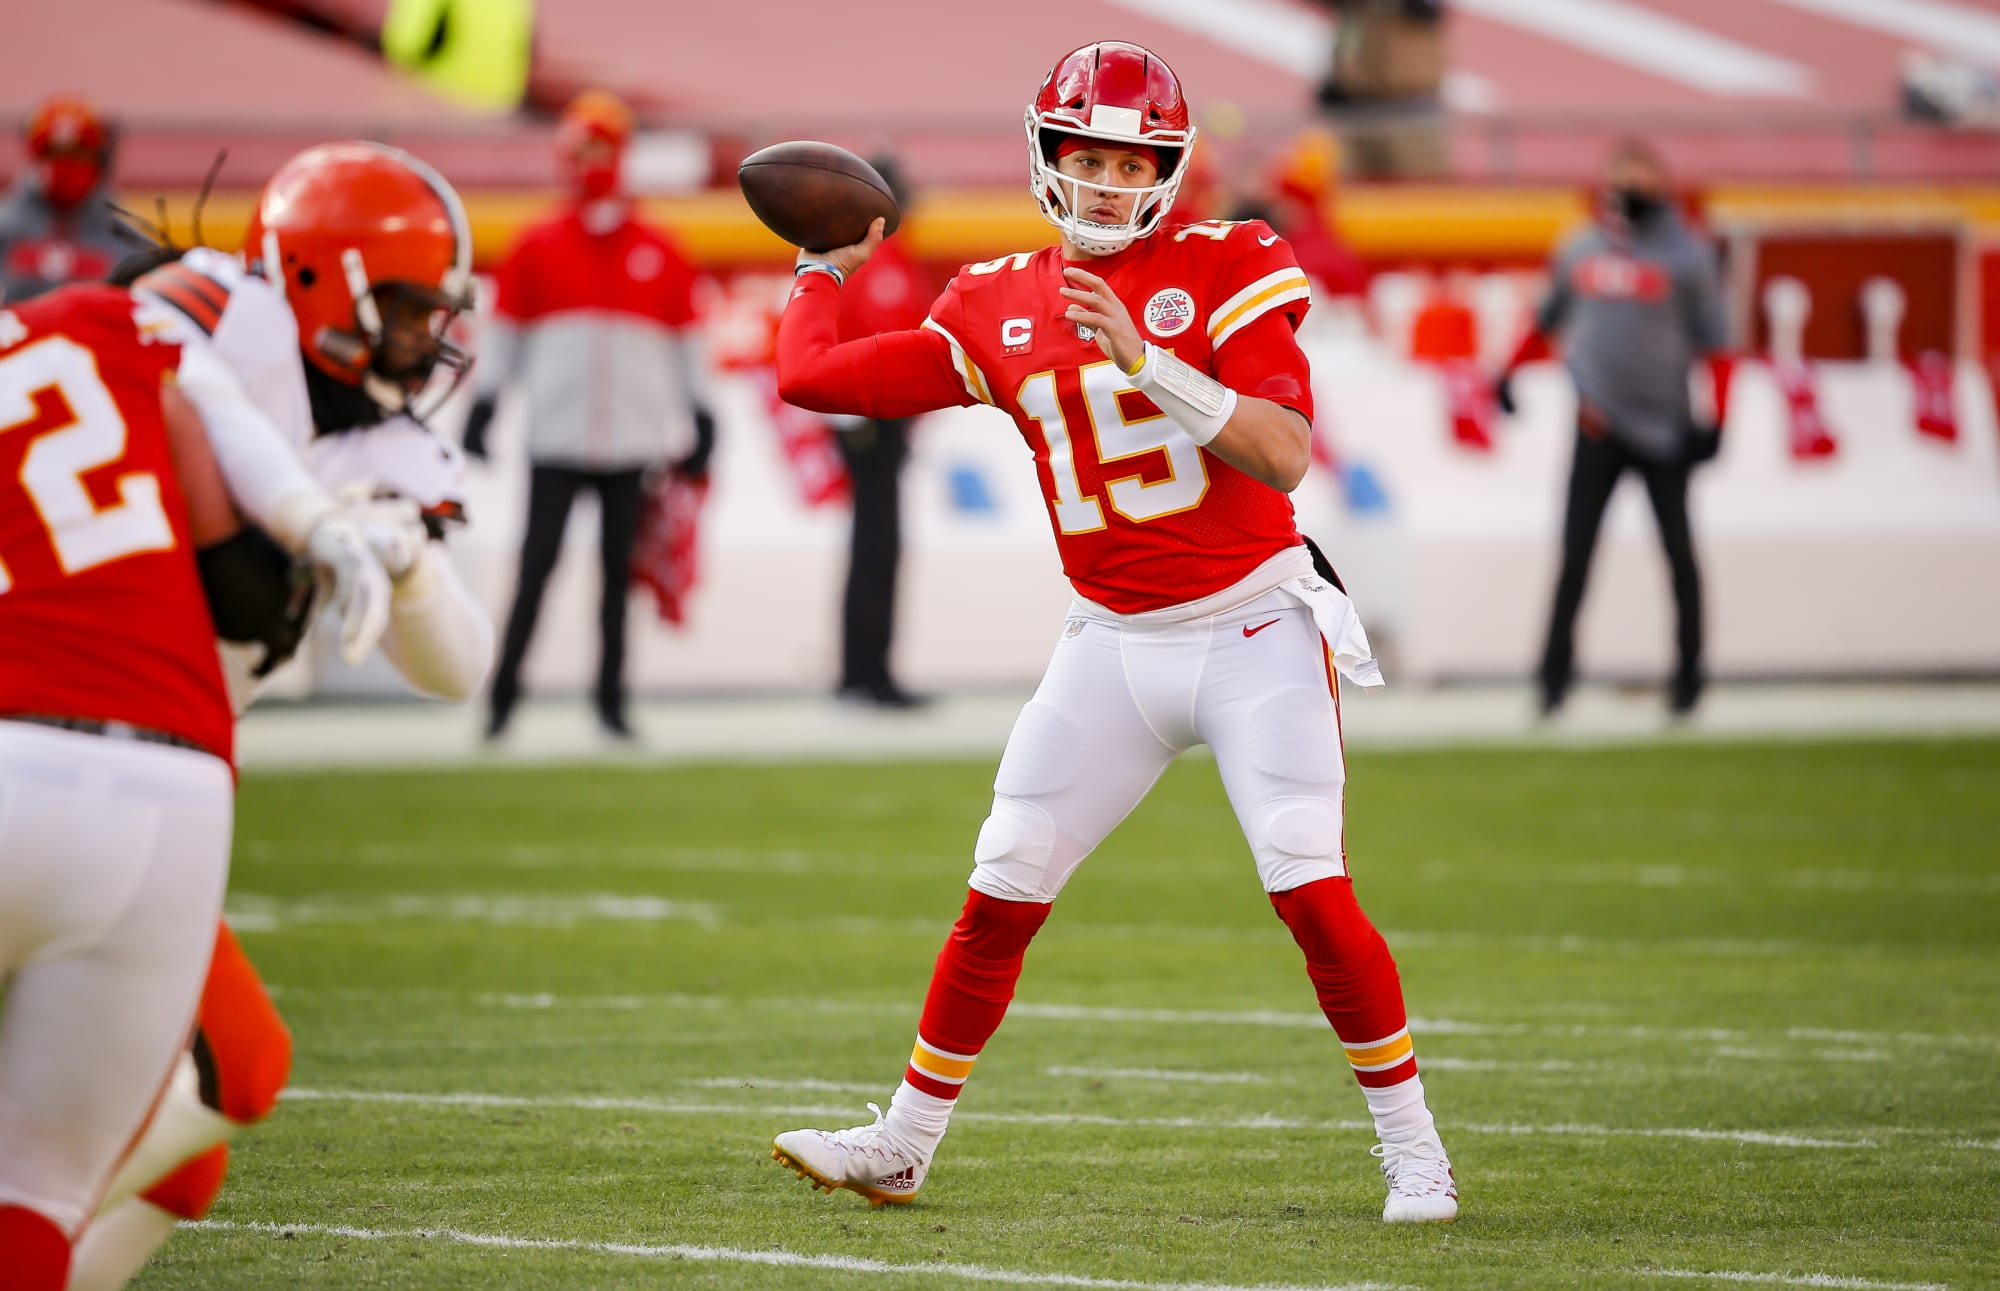 Patrick Mahomes continues to be limited for Chiefs at practice